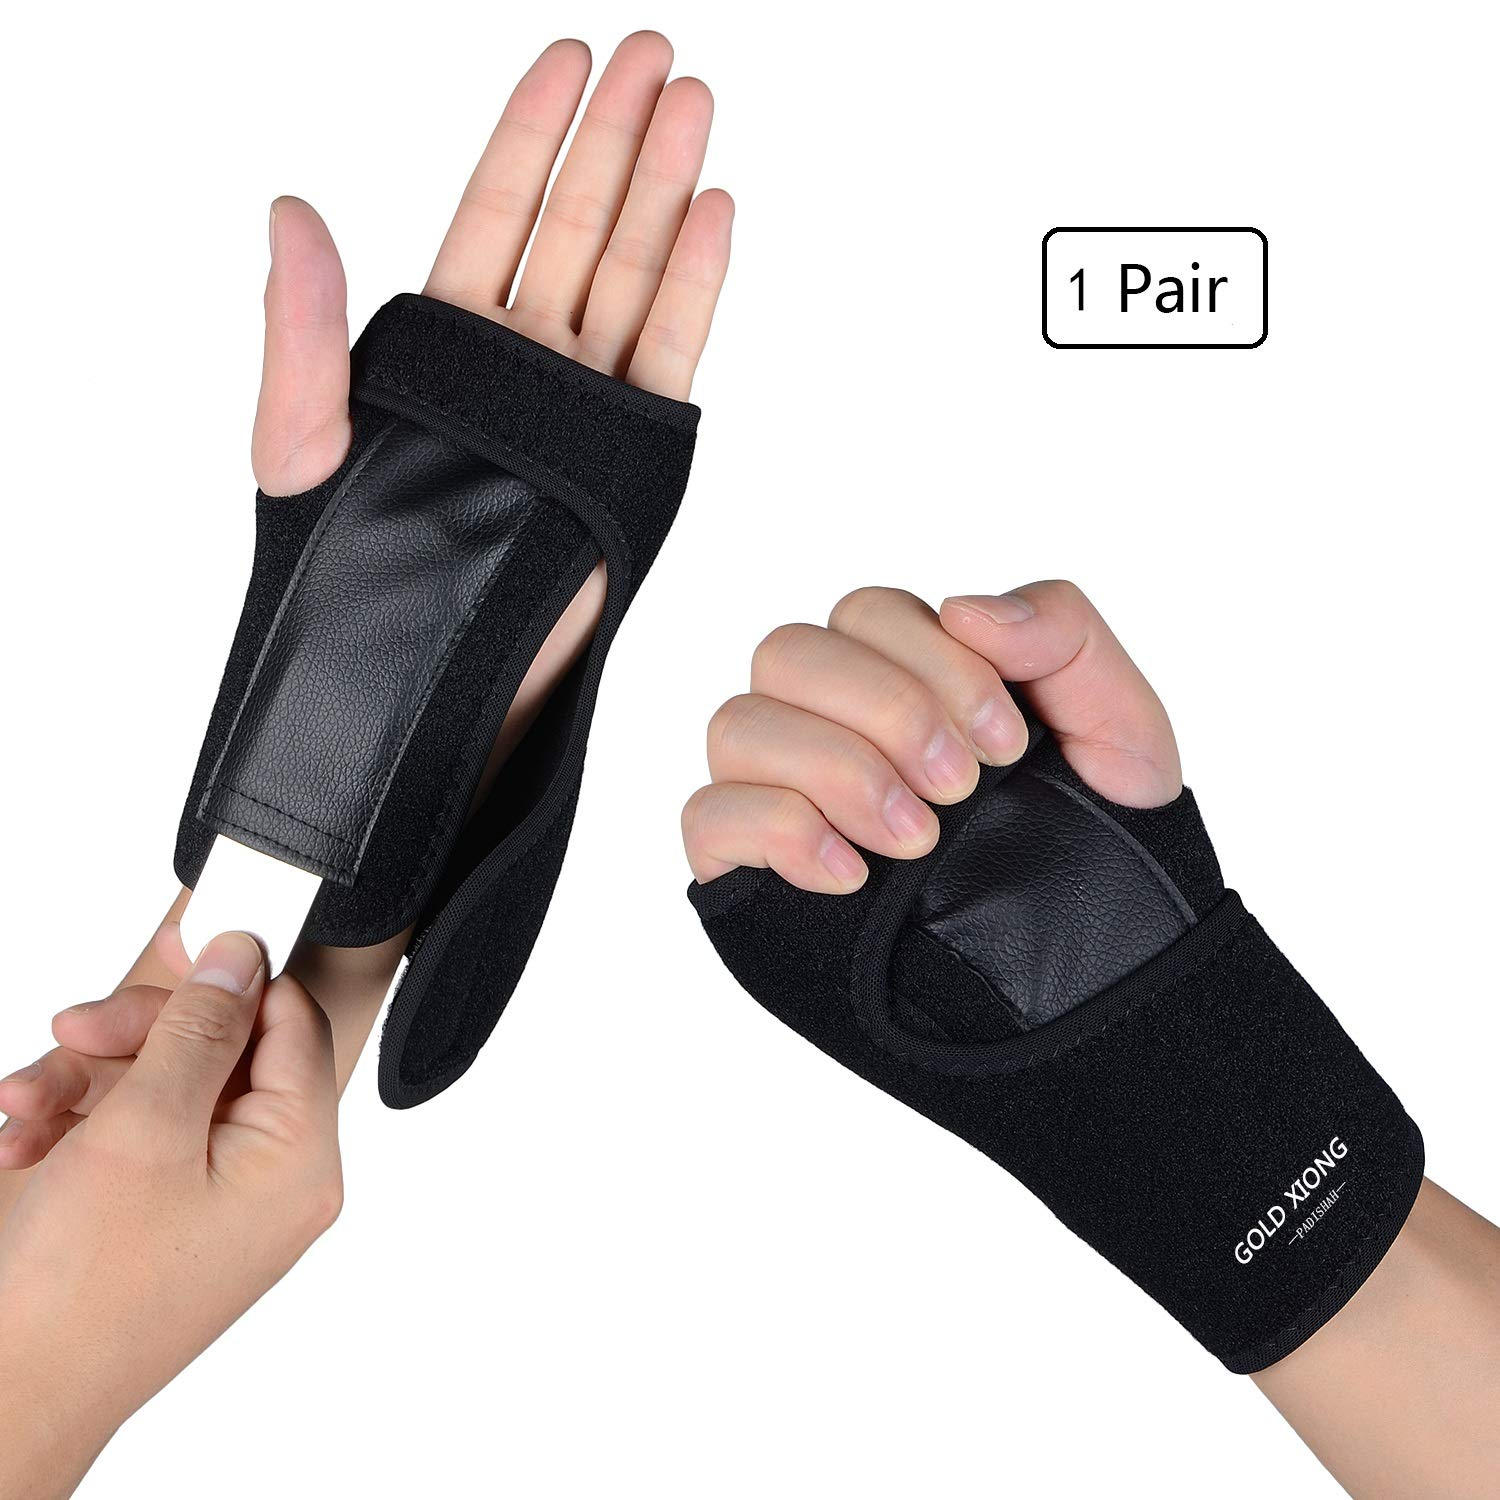 Wrist Brace ,One Pair Removable Wrist hand Splint Support Training Protector Wrist Wraps for Night Sleep ,provide support for Carpal Tunnel, Injuries,Wrist Pain, Sprain, Gym Fitness Bands, by Gold Xiong